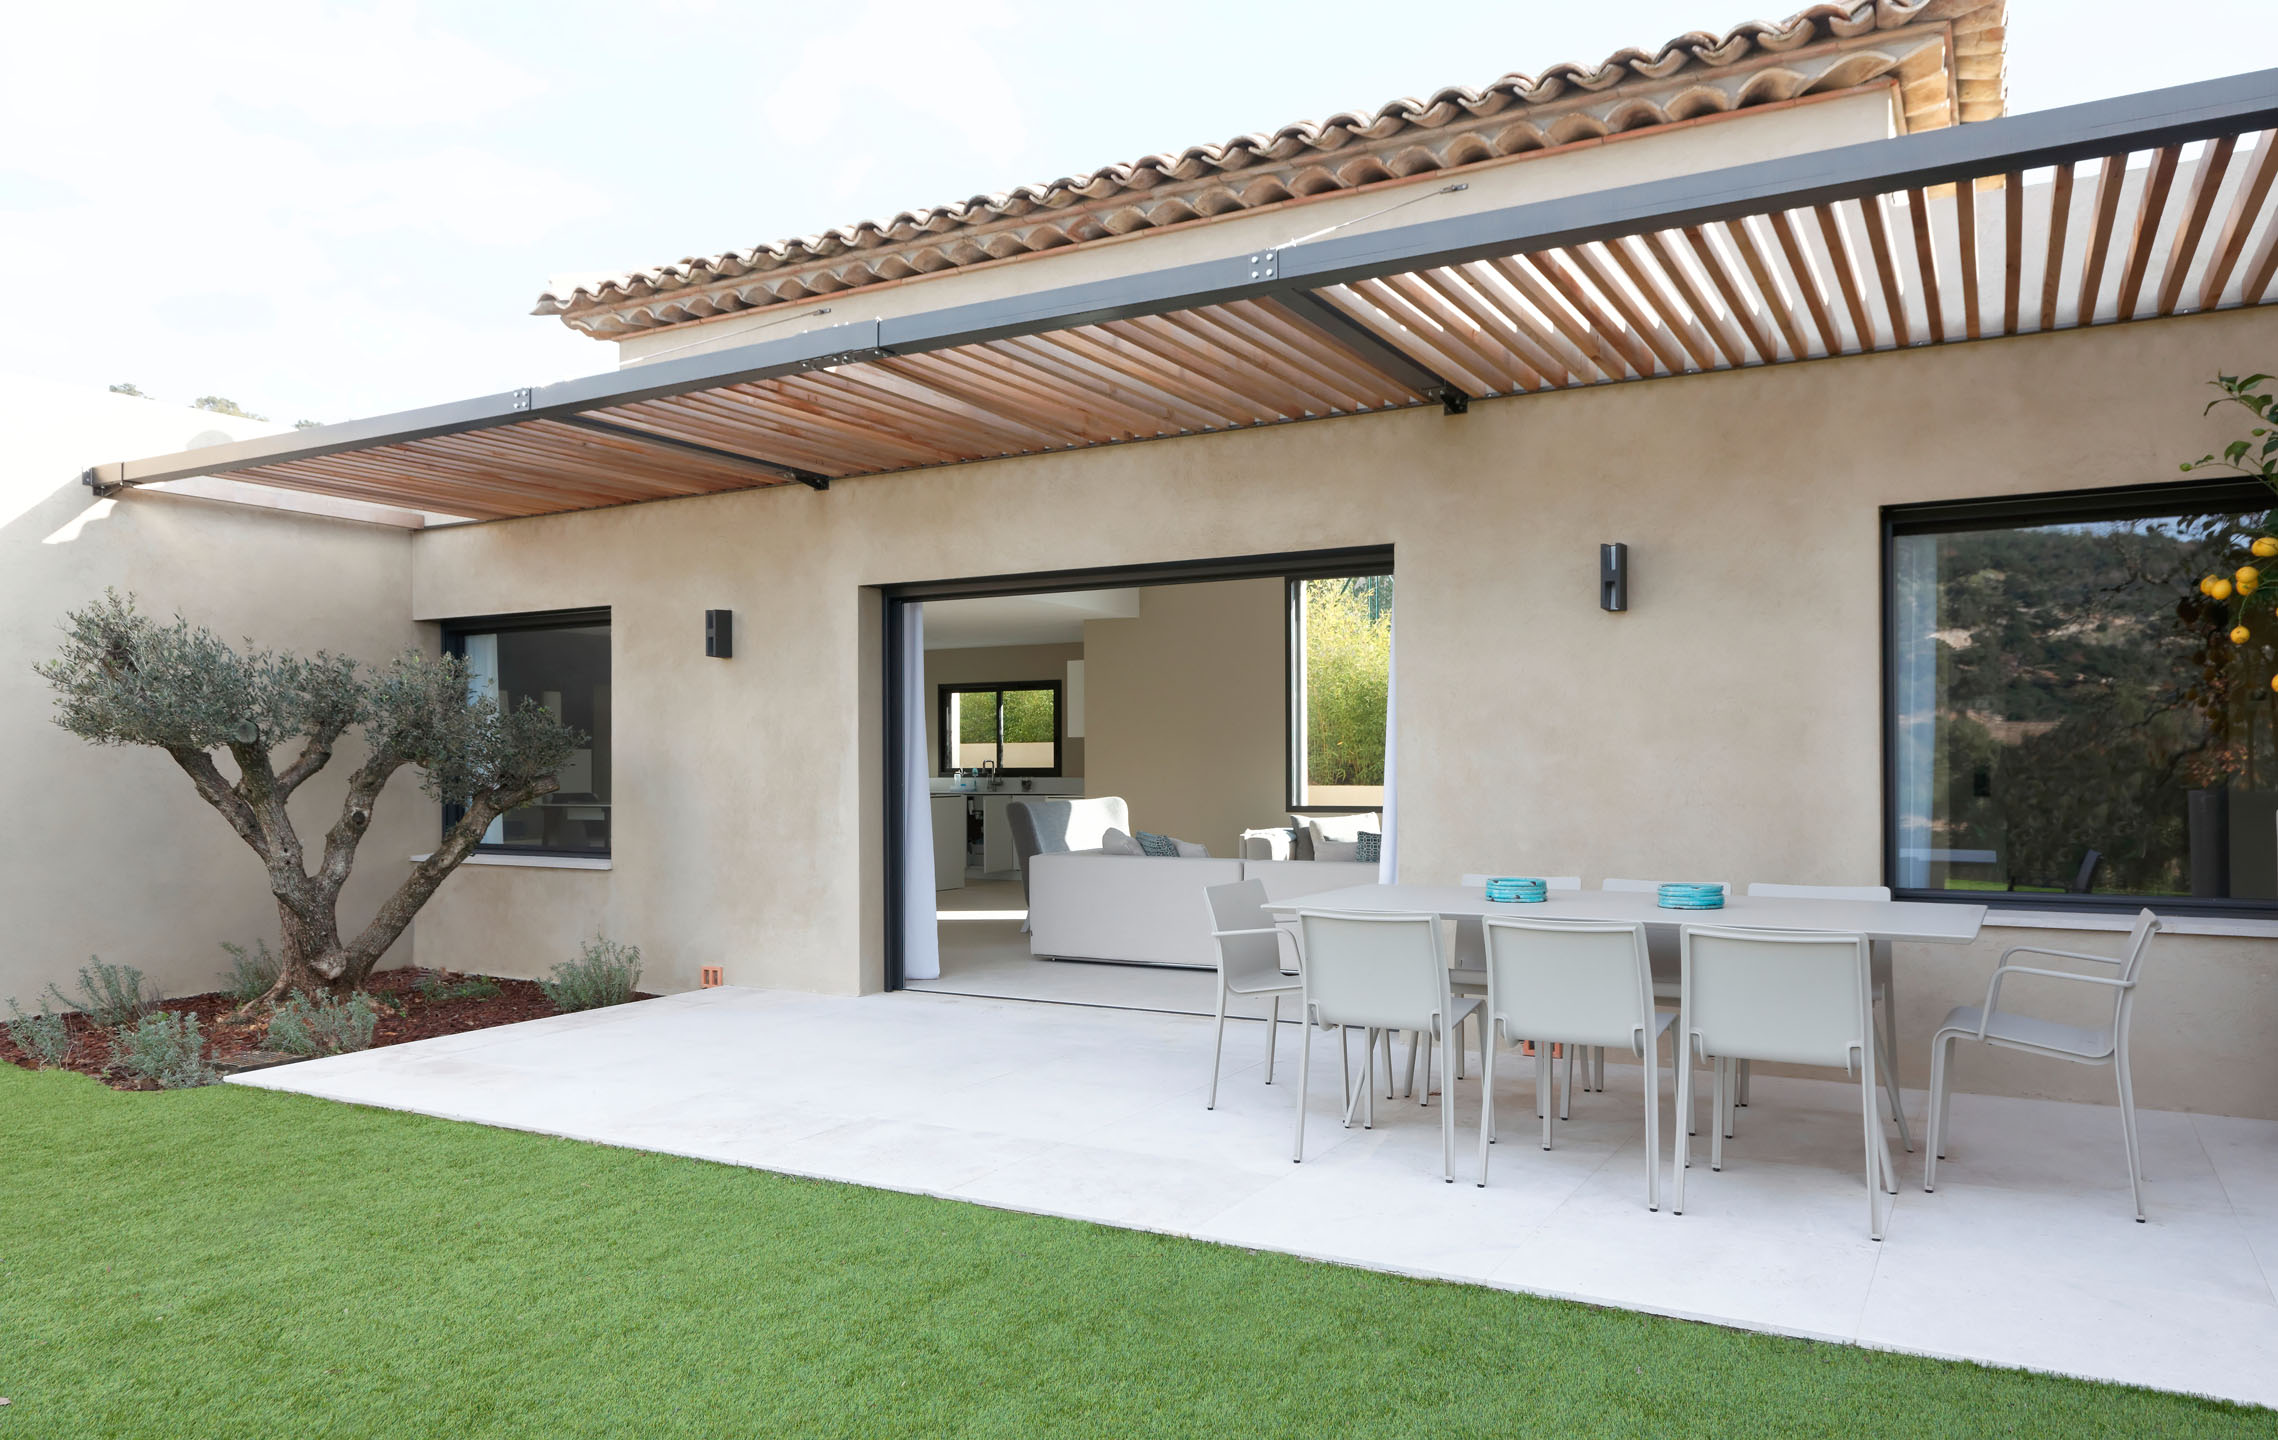 Rafflin alu pvc construction neuve maison for Fenetre de maison